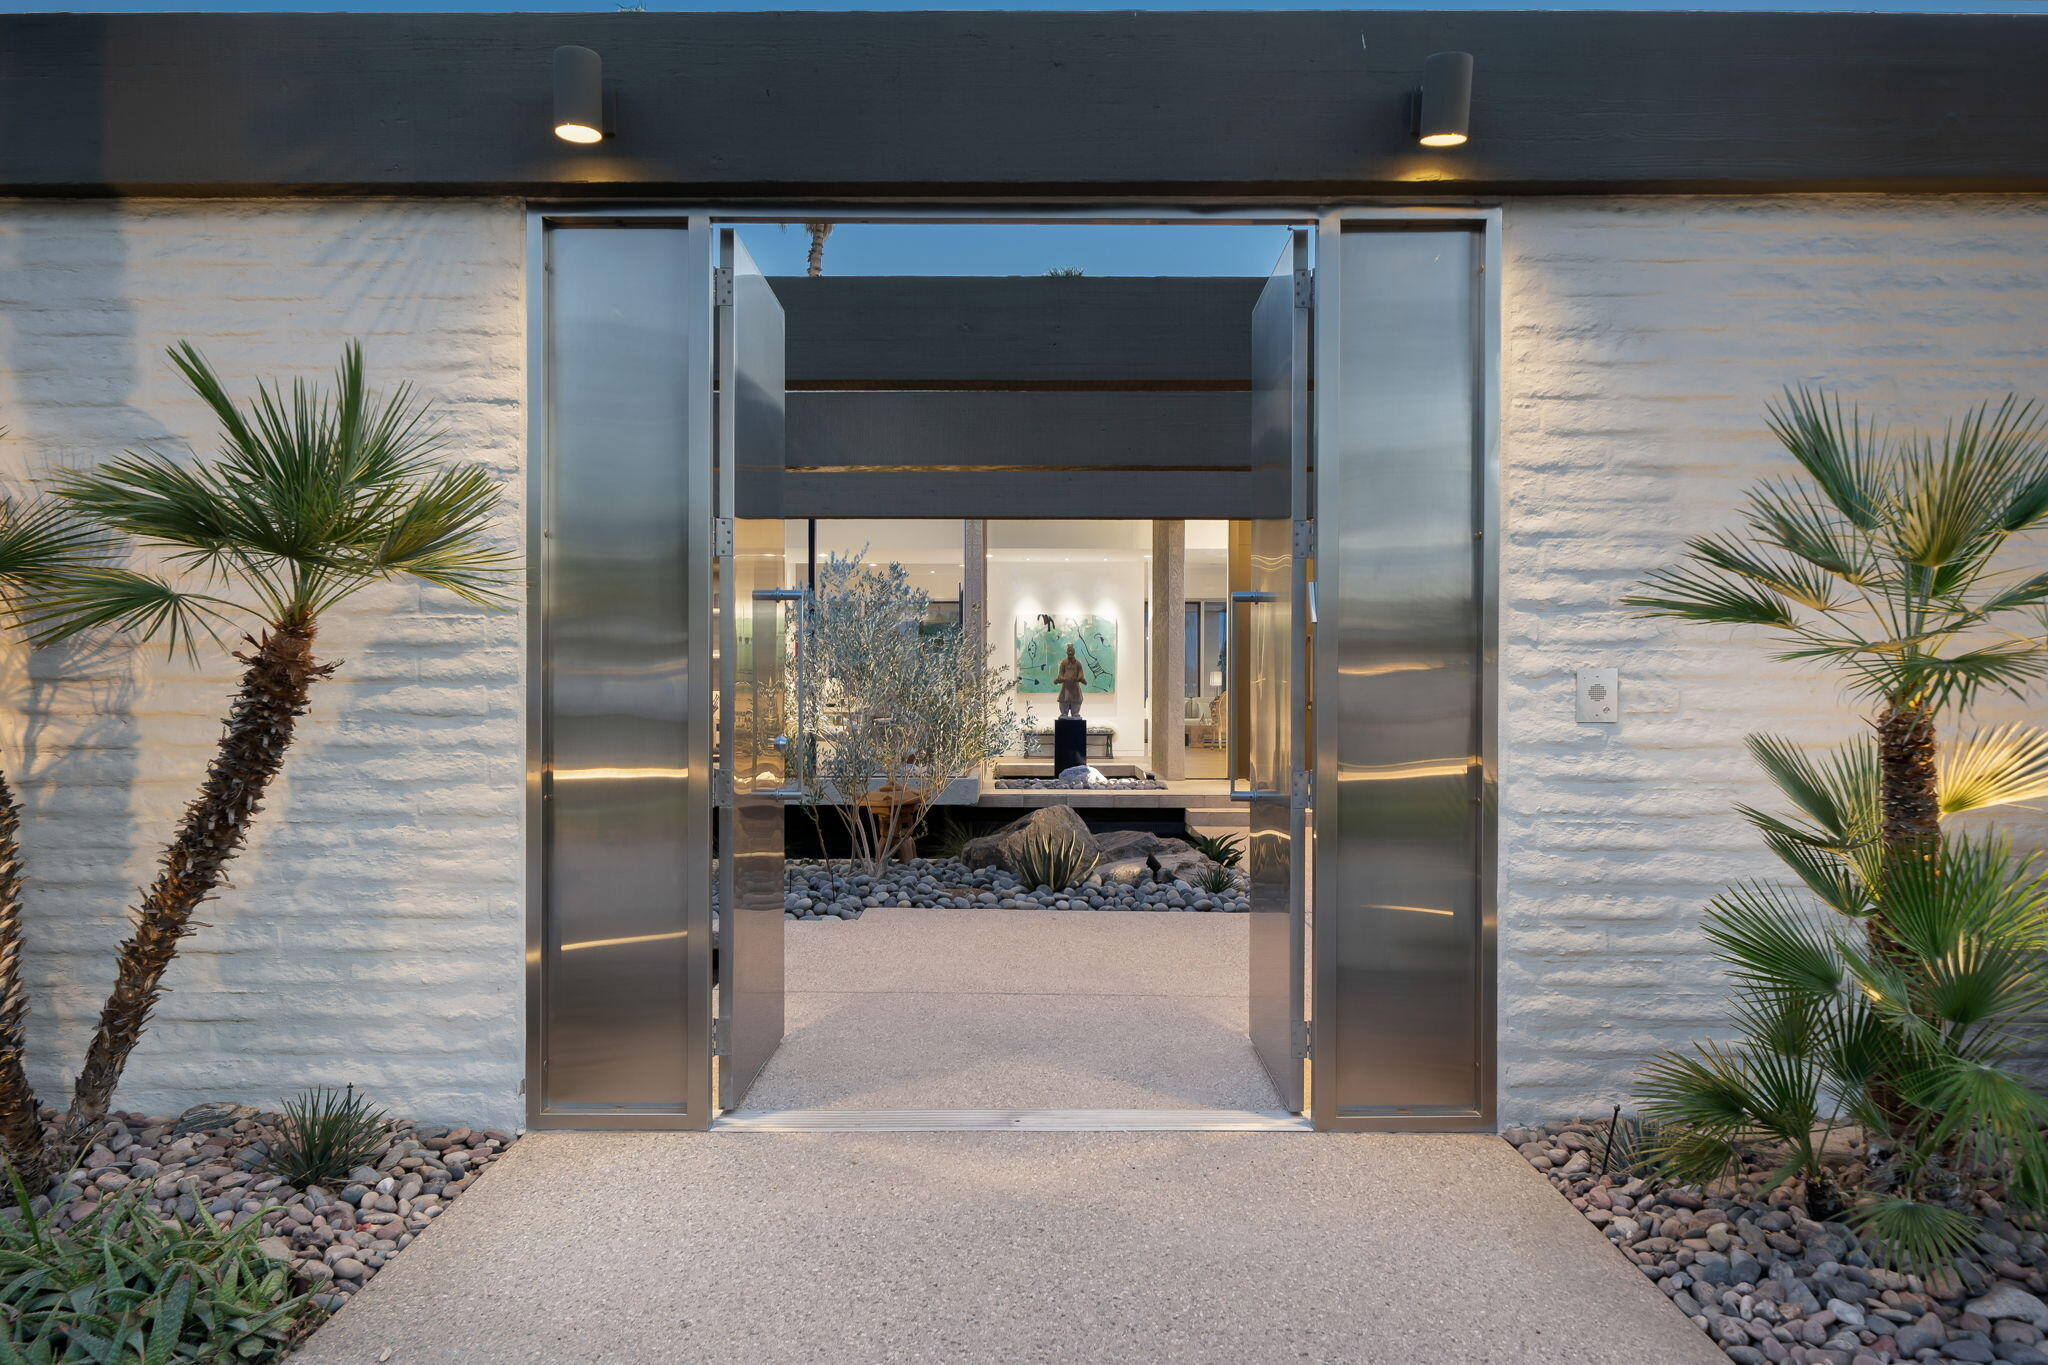 The stainless steel double door entry reveals a private courtyard with a stunning water feature. This custom desert contemporary home has it all, soaring ceilings, walls of glass, magnificent mountain and fairway views, large walls perfect for art collectors and total indoor outdoor living. The backyard is complete with covered patio, outdoor dining area , barbecue, sculpture and pebble tec pool and spa. Living room has wood flooring, sunken remodeled bar and fireplace,  The entertainers dream kitchen includes granite, stainless appliances, large island, walk in pantry and breakfast room. The large primary suite offers a sitting area, dual bathrooms and walk in closets. Invisible ceiling speakers installed in primary bedroom, living room, dining room, & den! The den cantilevers over the water feature, an office, two en suite bedrooms, exquisite powder bath and laundry room complete this exceptional home.